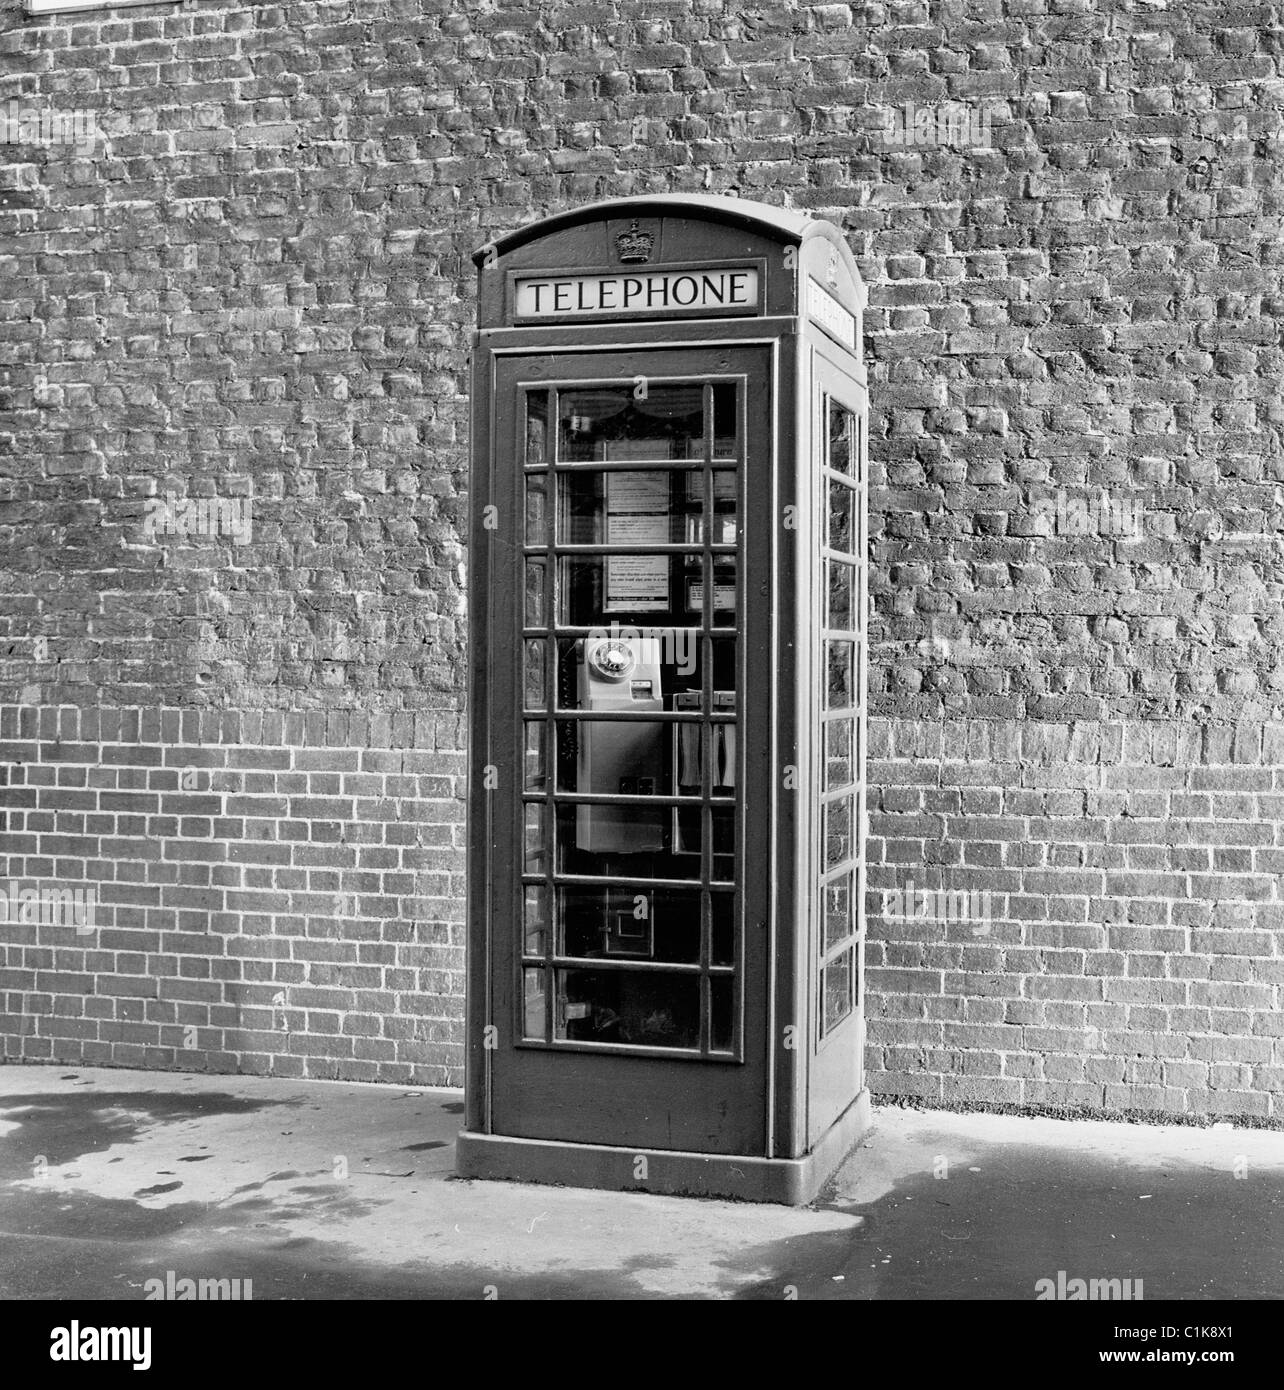 London, 1950s. A photograph by J Allan cash of the famous icon, the public telephone kiosk designed by Sir Giles - Stock Image